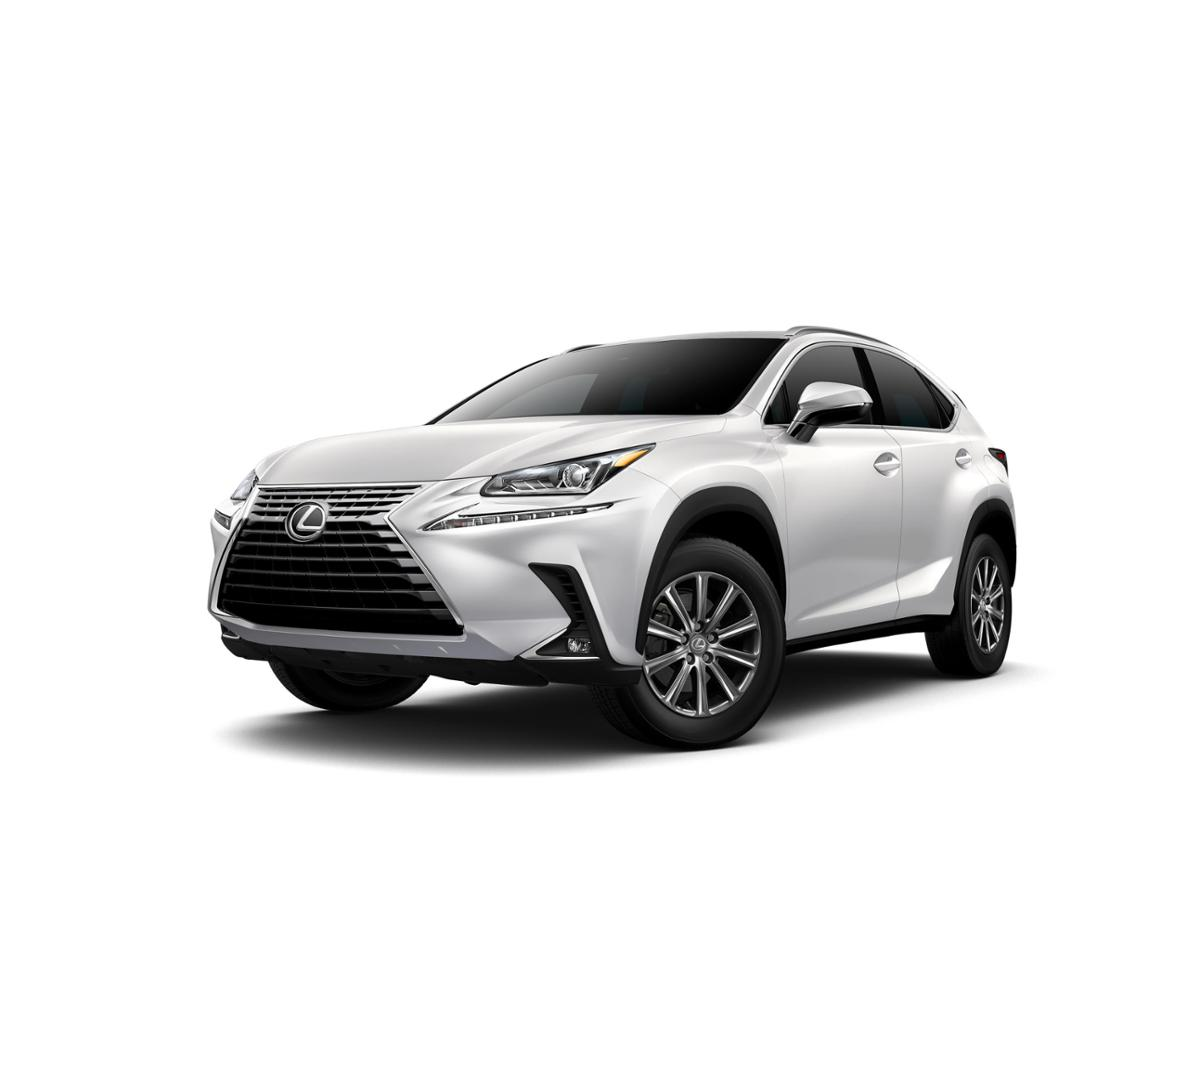 2020 Lexus NX Vehicle Photo in Evansville, IN 47715